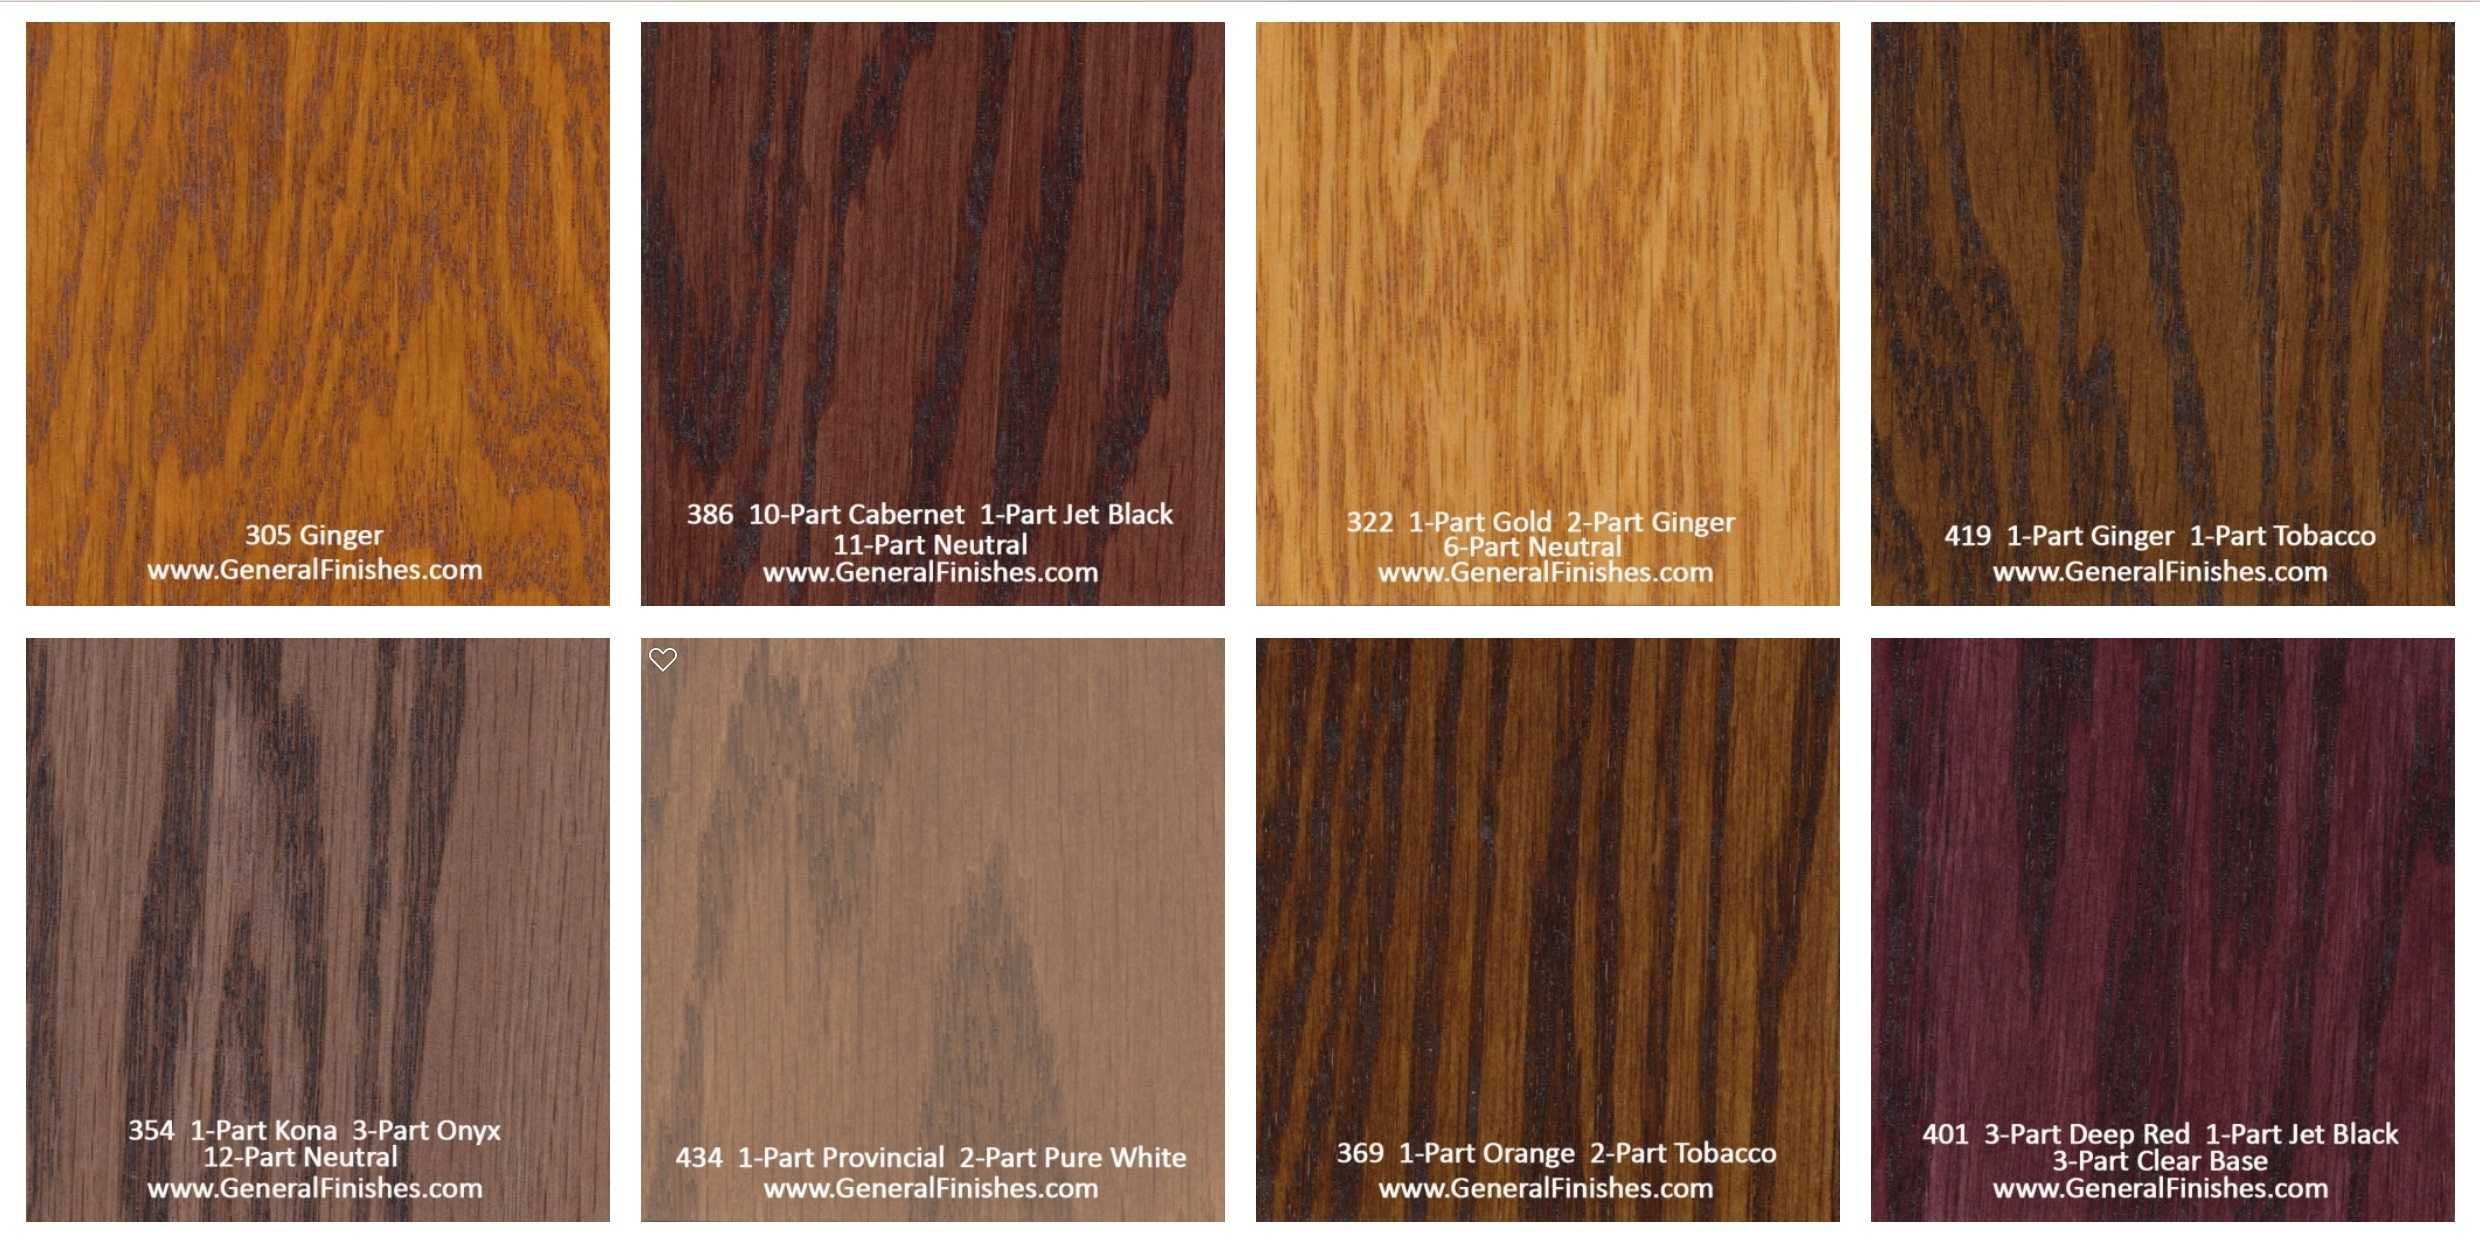 General finishes pro floor stain color swatch chart for for Hardwood floors stain colors